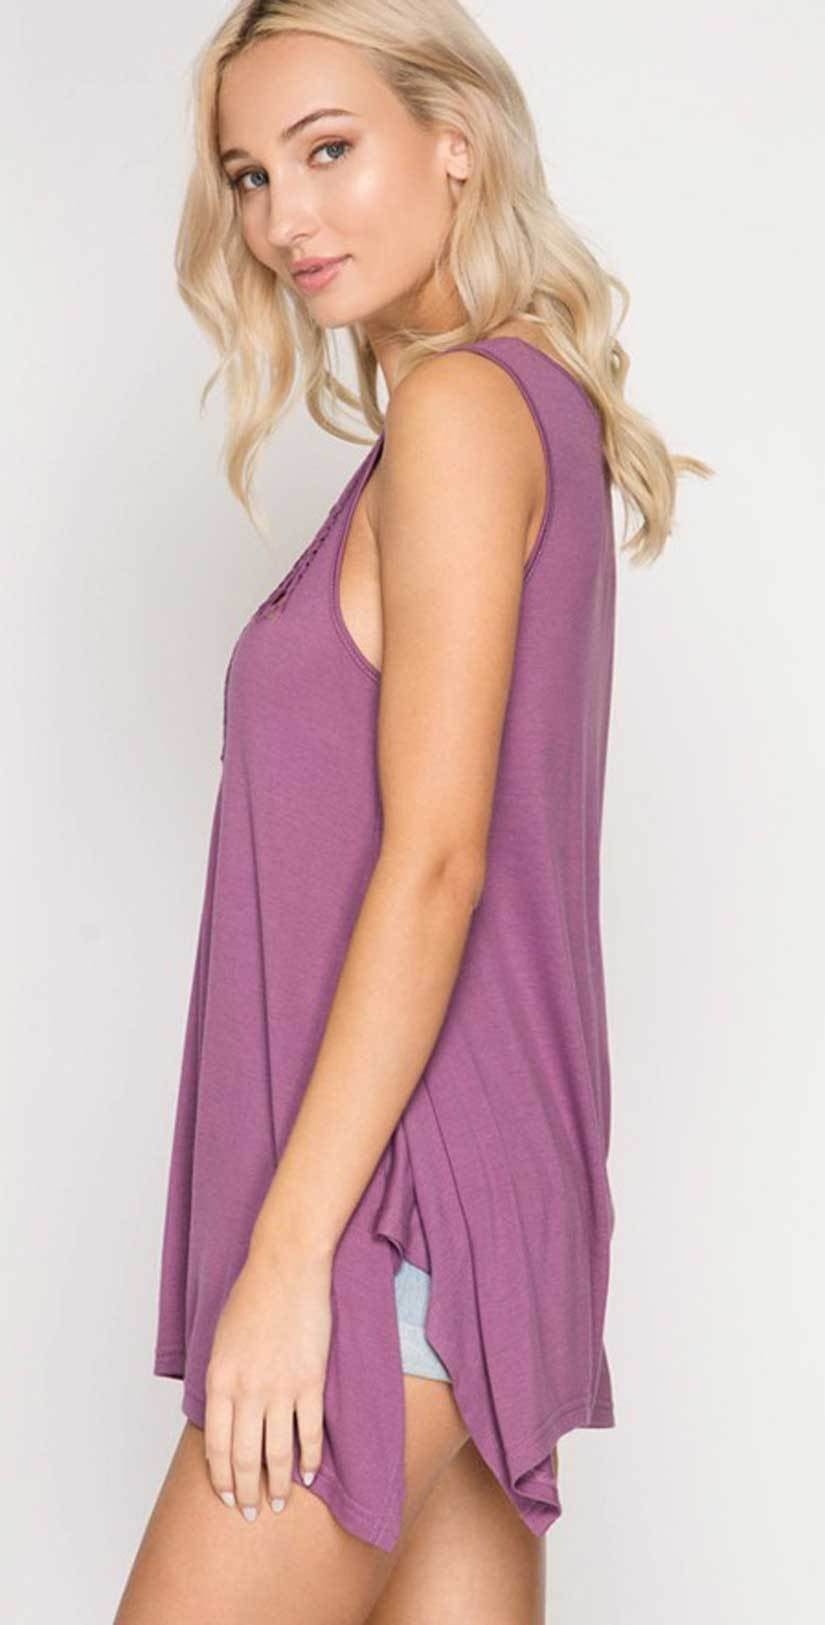 She + Sky Sleeveless Top with Braided Cutout Detail SL5262 side studio